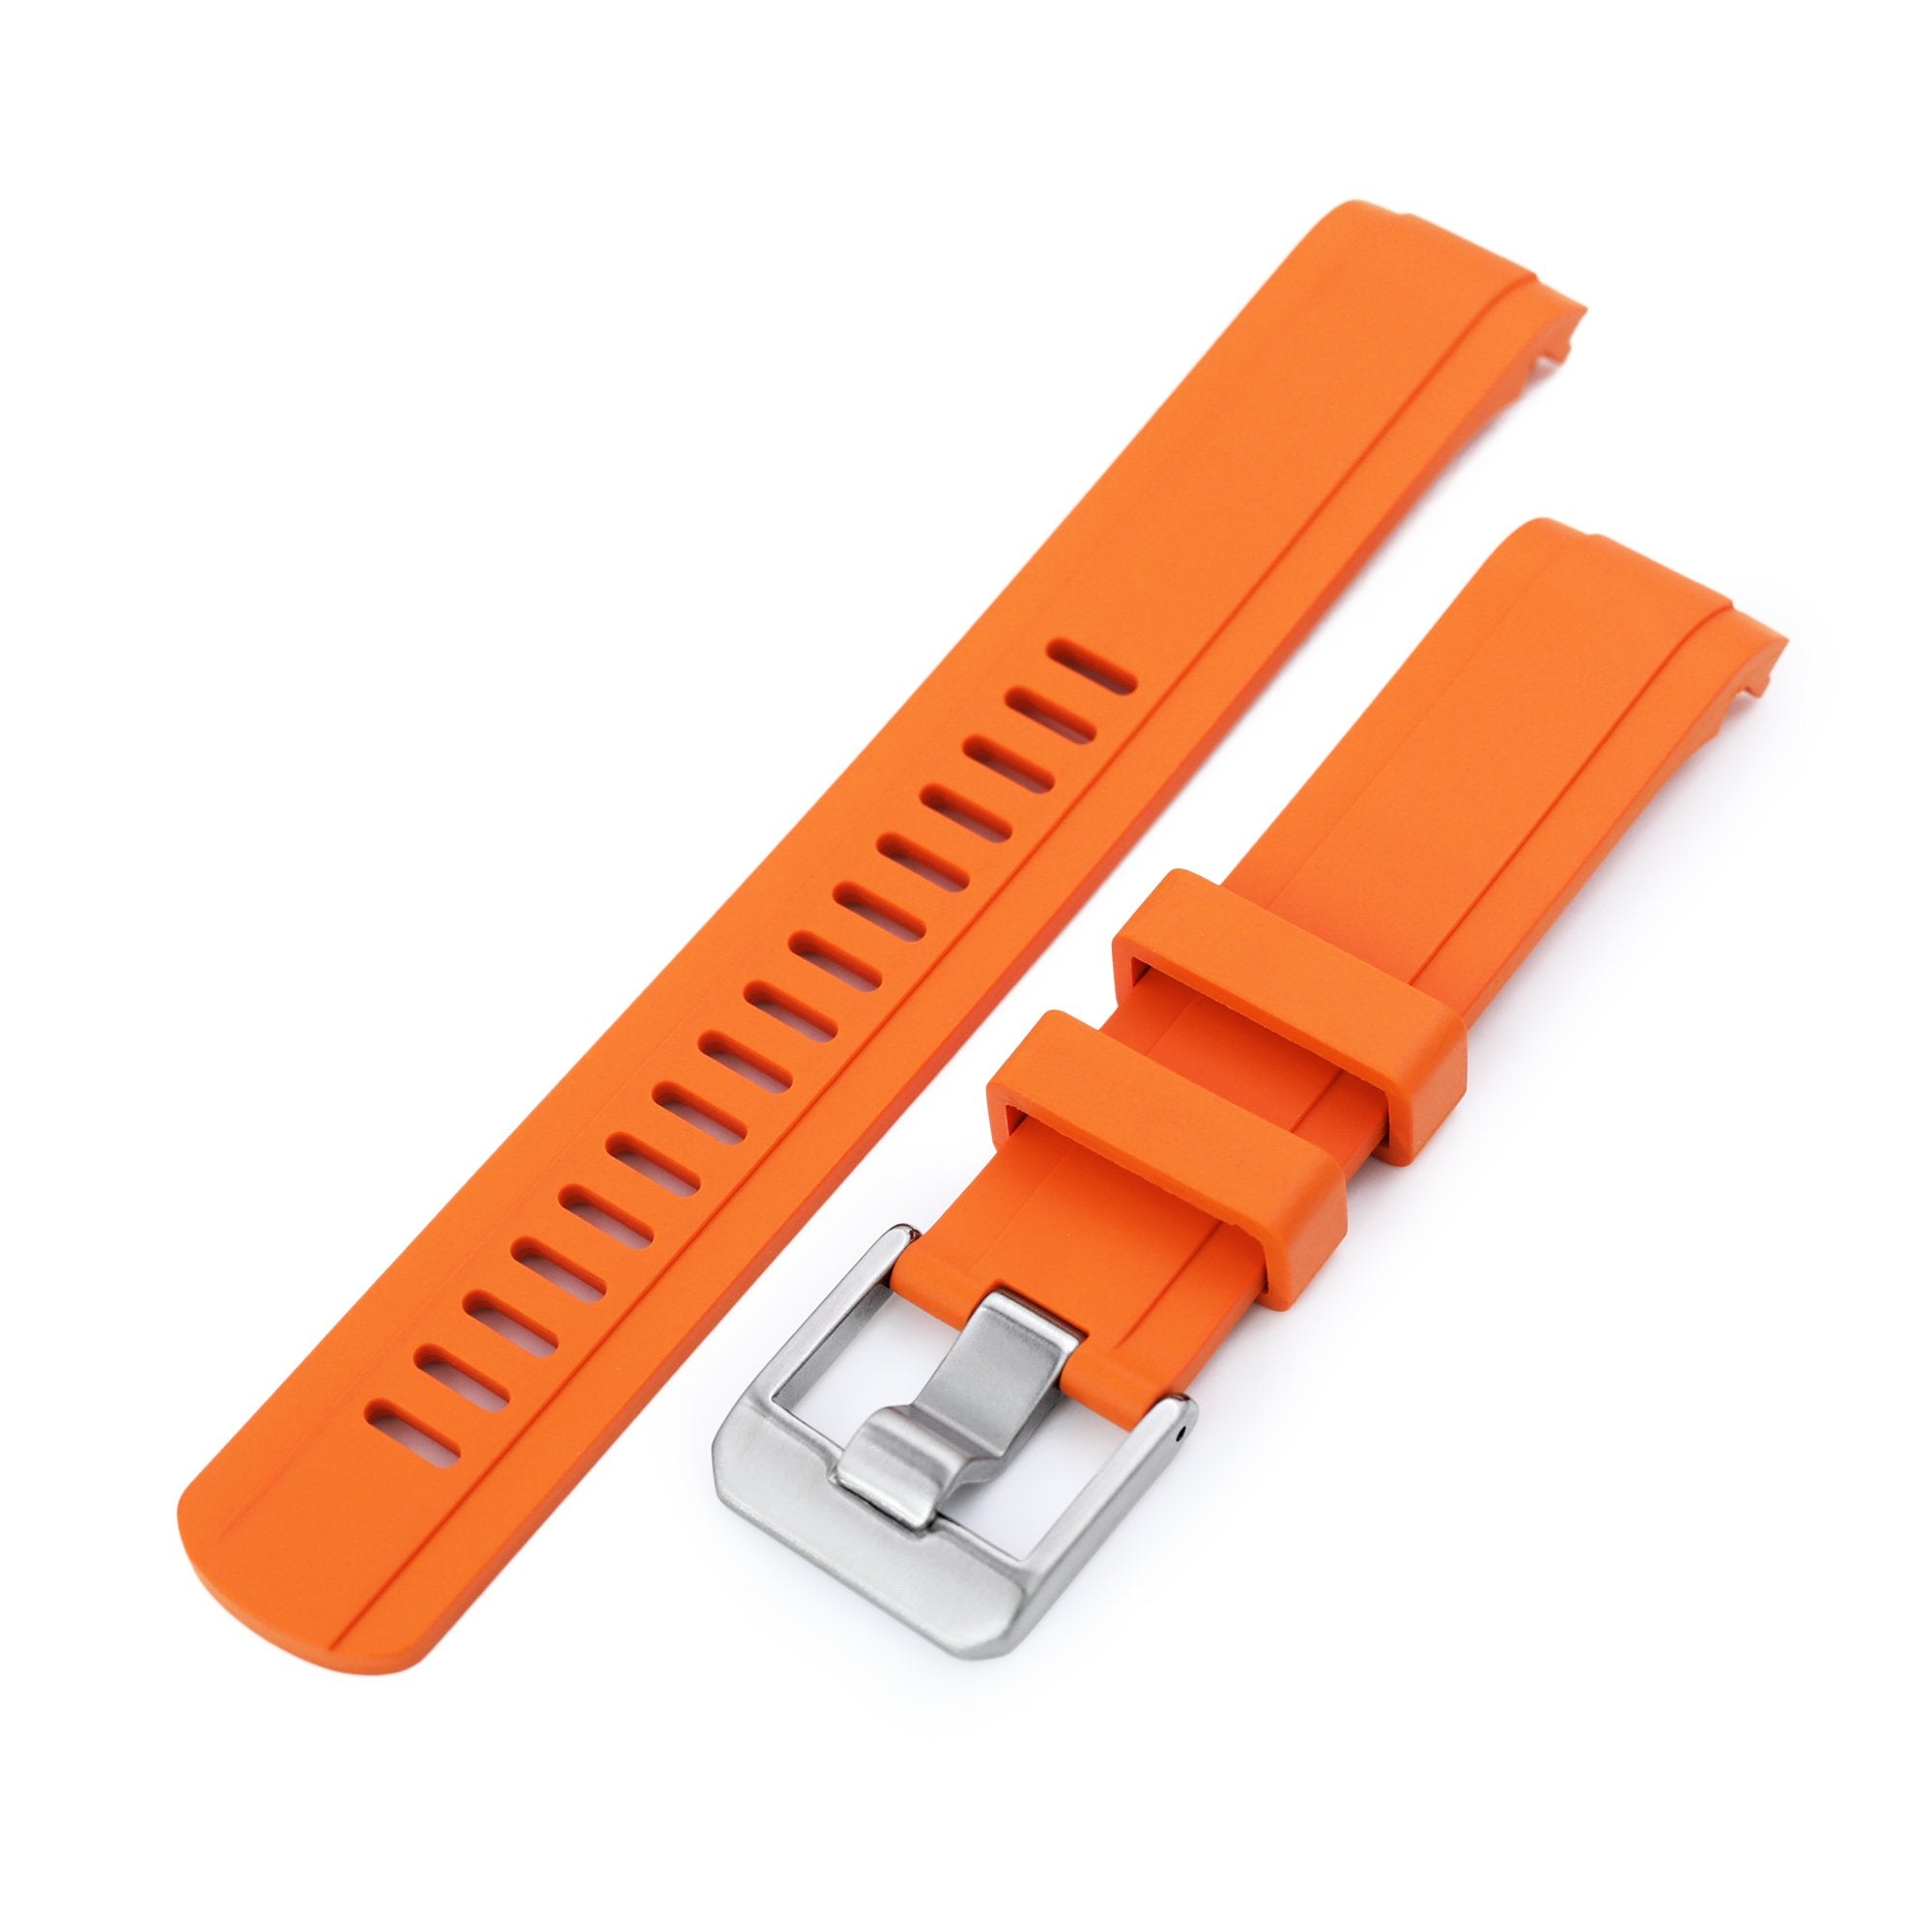 20mm Crafter Blue - Orange Rubber Curved Lug Watch Strap for Seiko Baby MM200 & Mini Turtles SRPC35 Strapcode Watch Bands